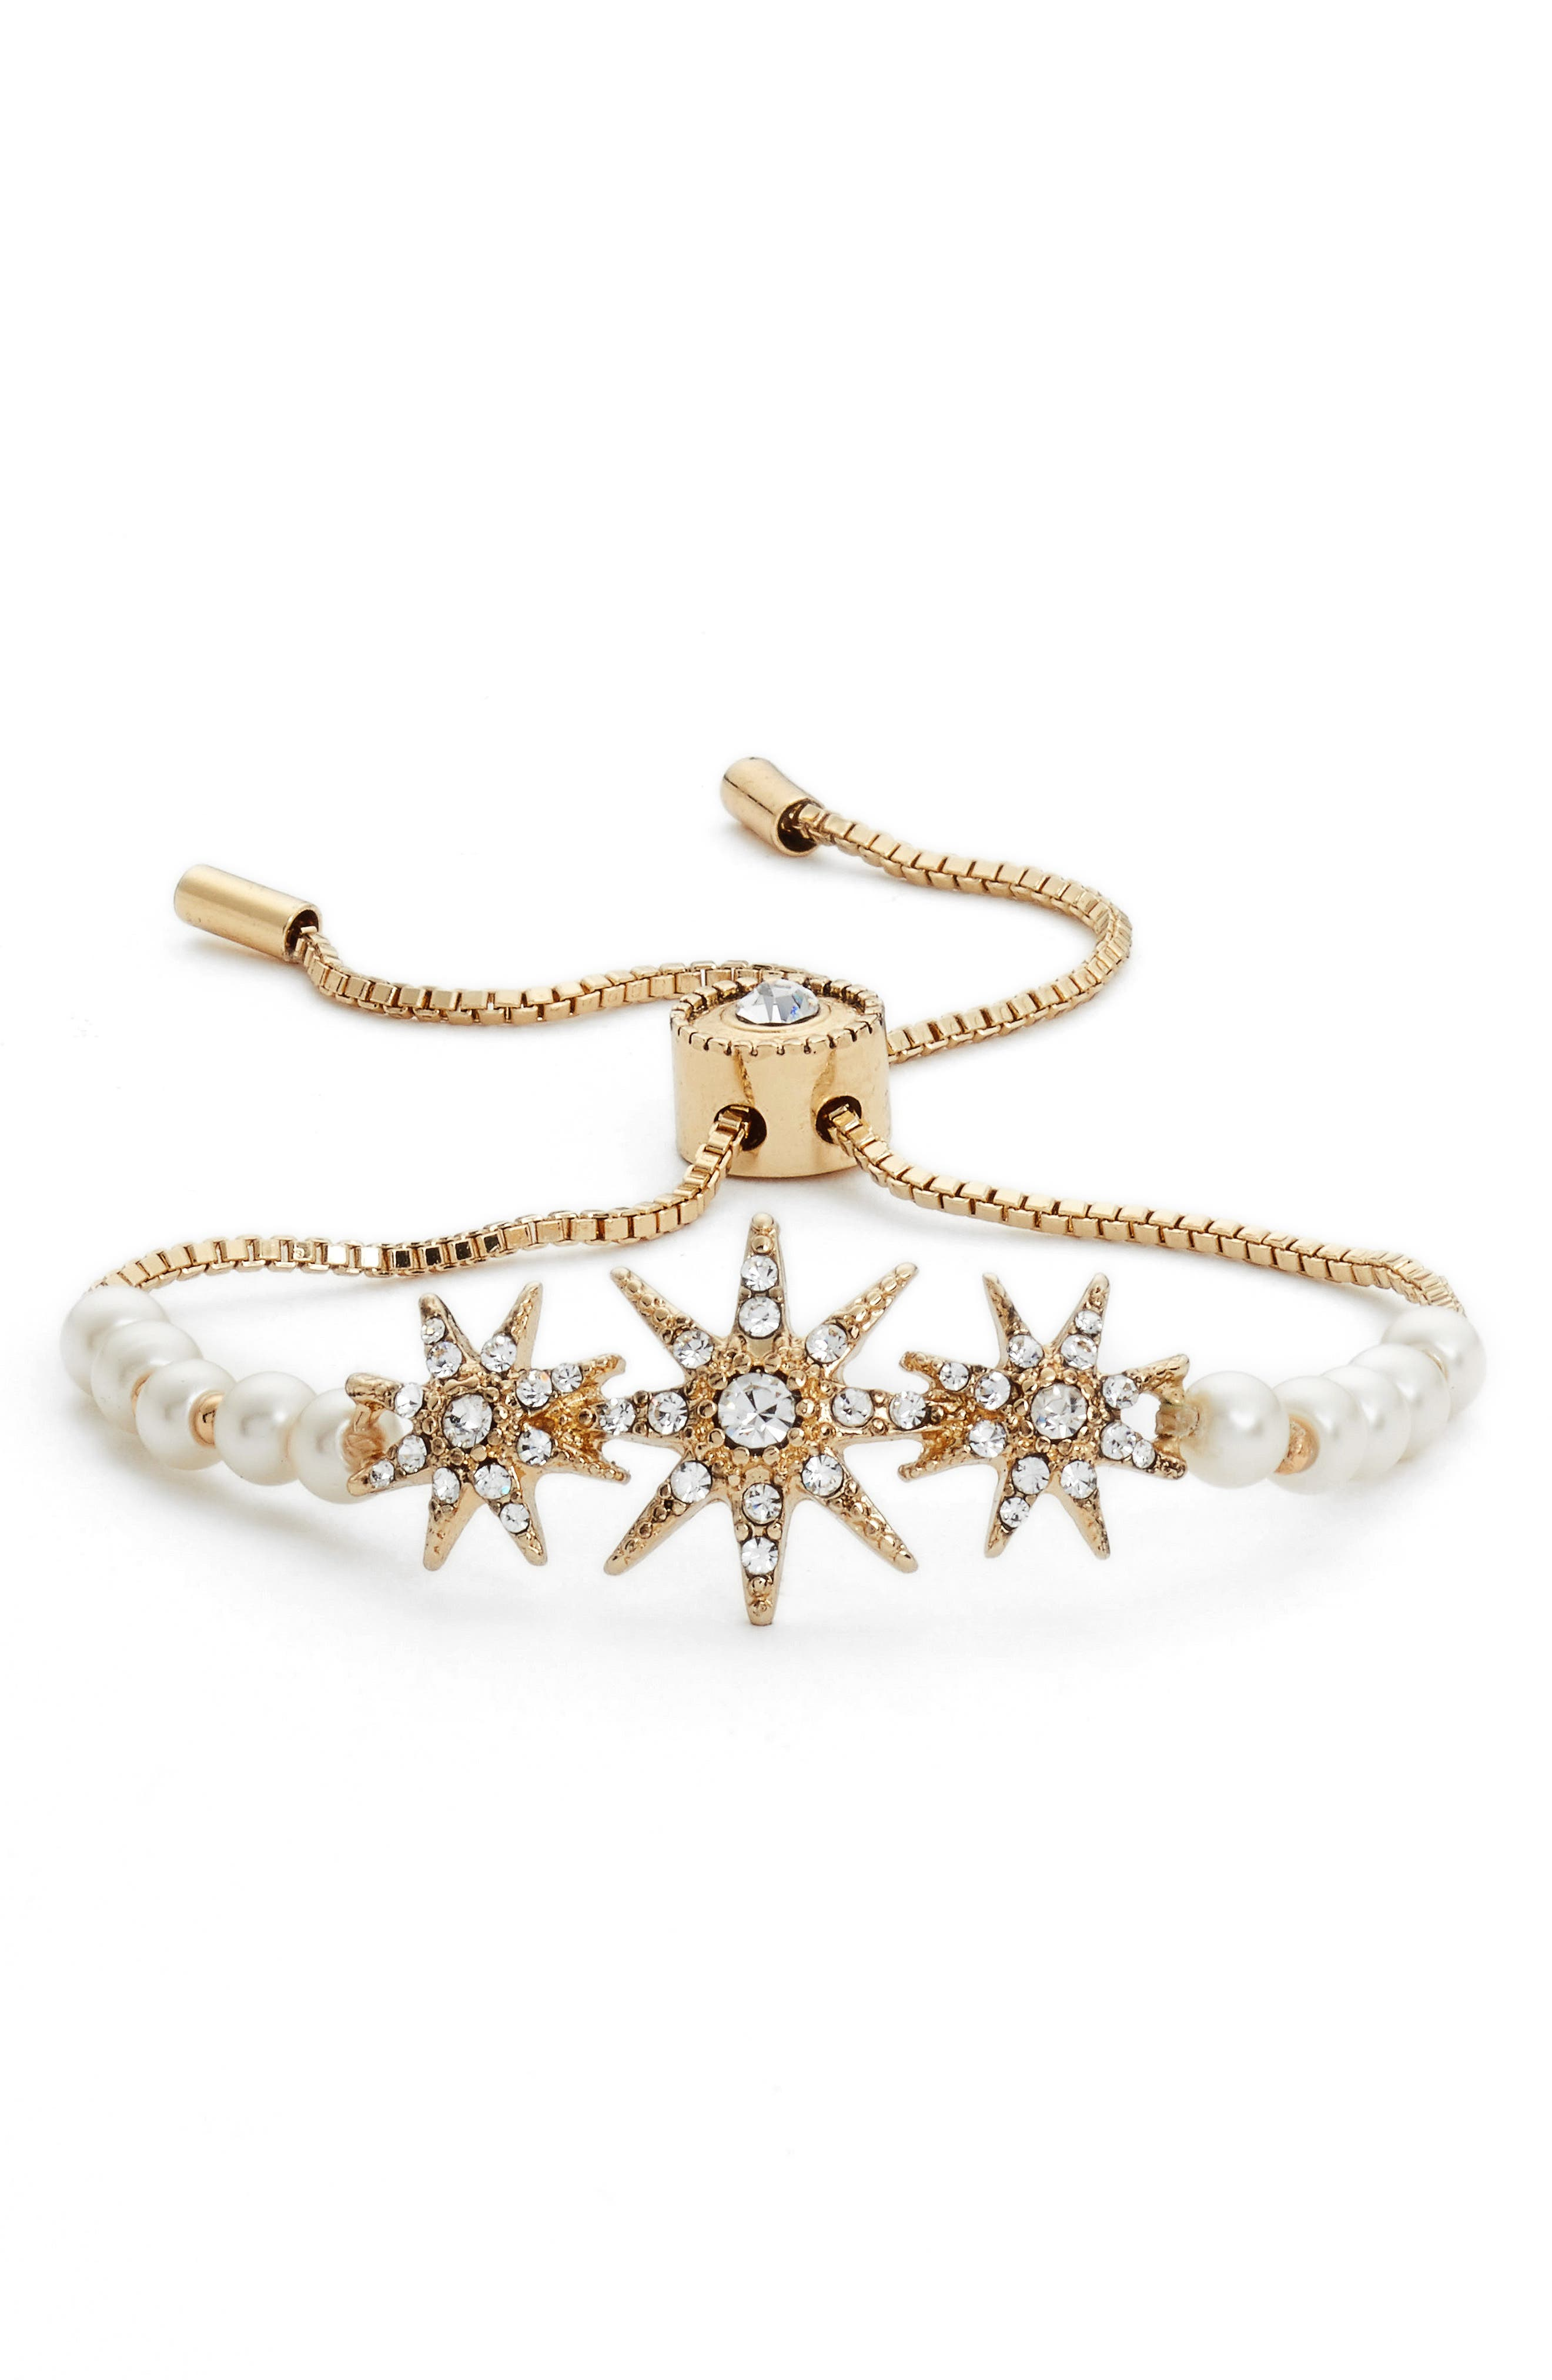 Star Adjustable Bracelet,                             Main thumbnail 1, color,                             Pearl/ Cry/ Gold